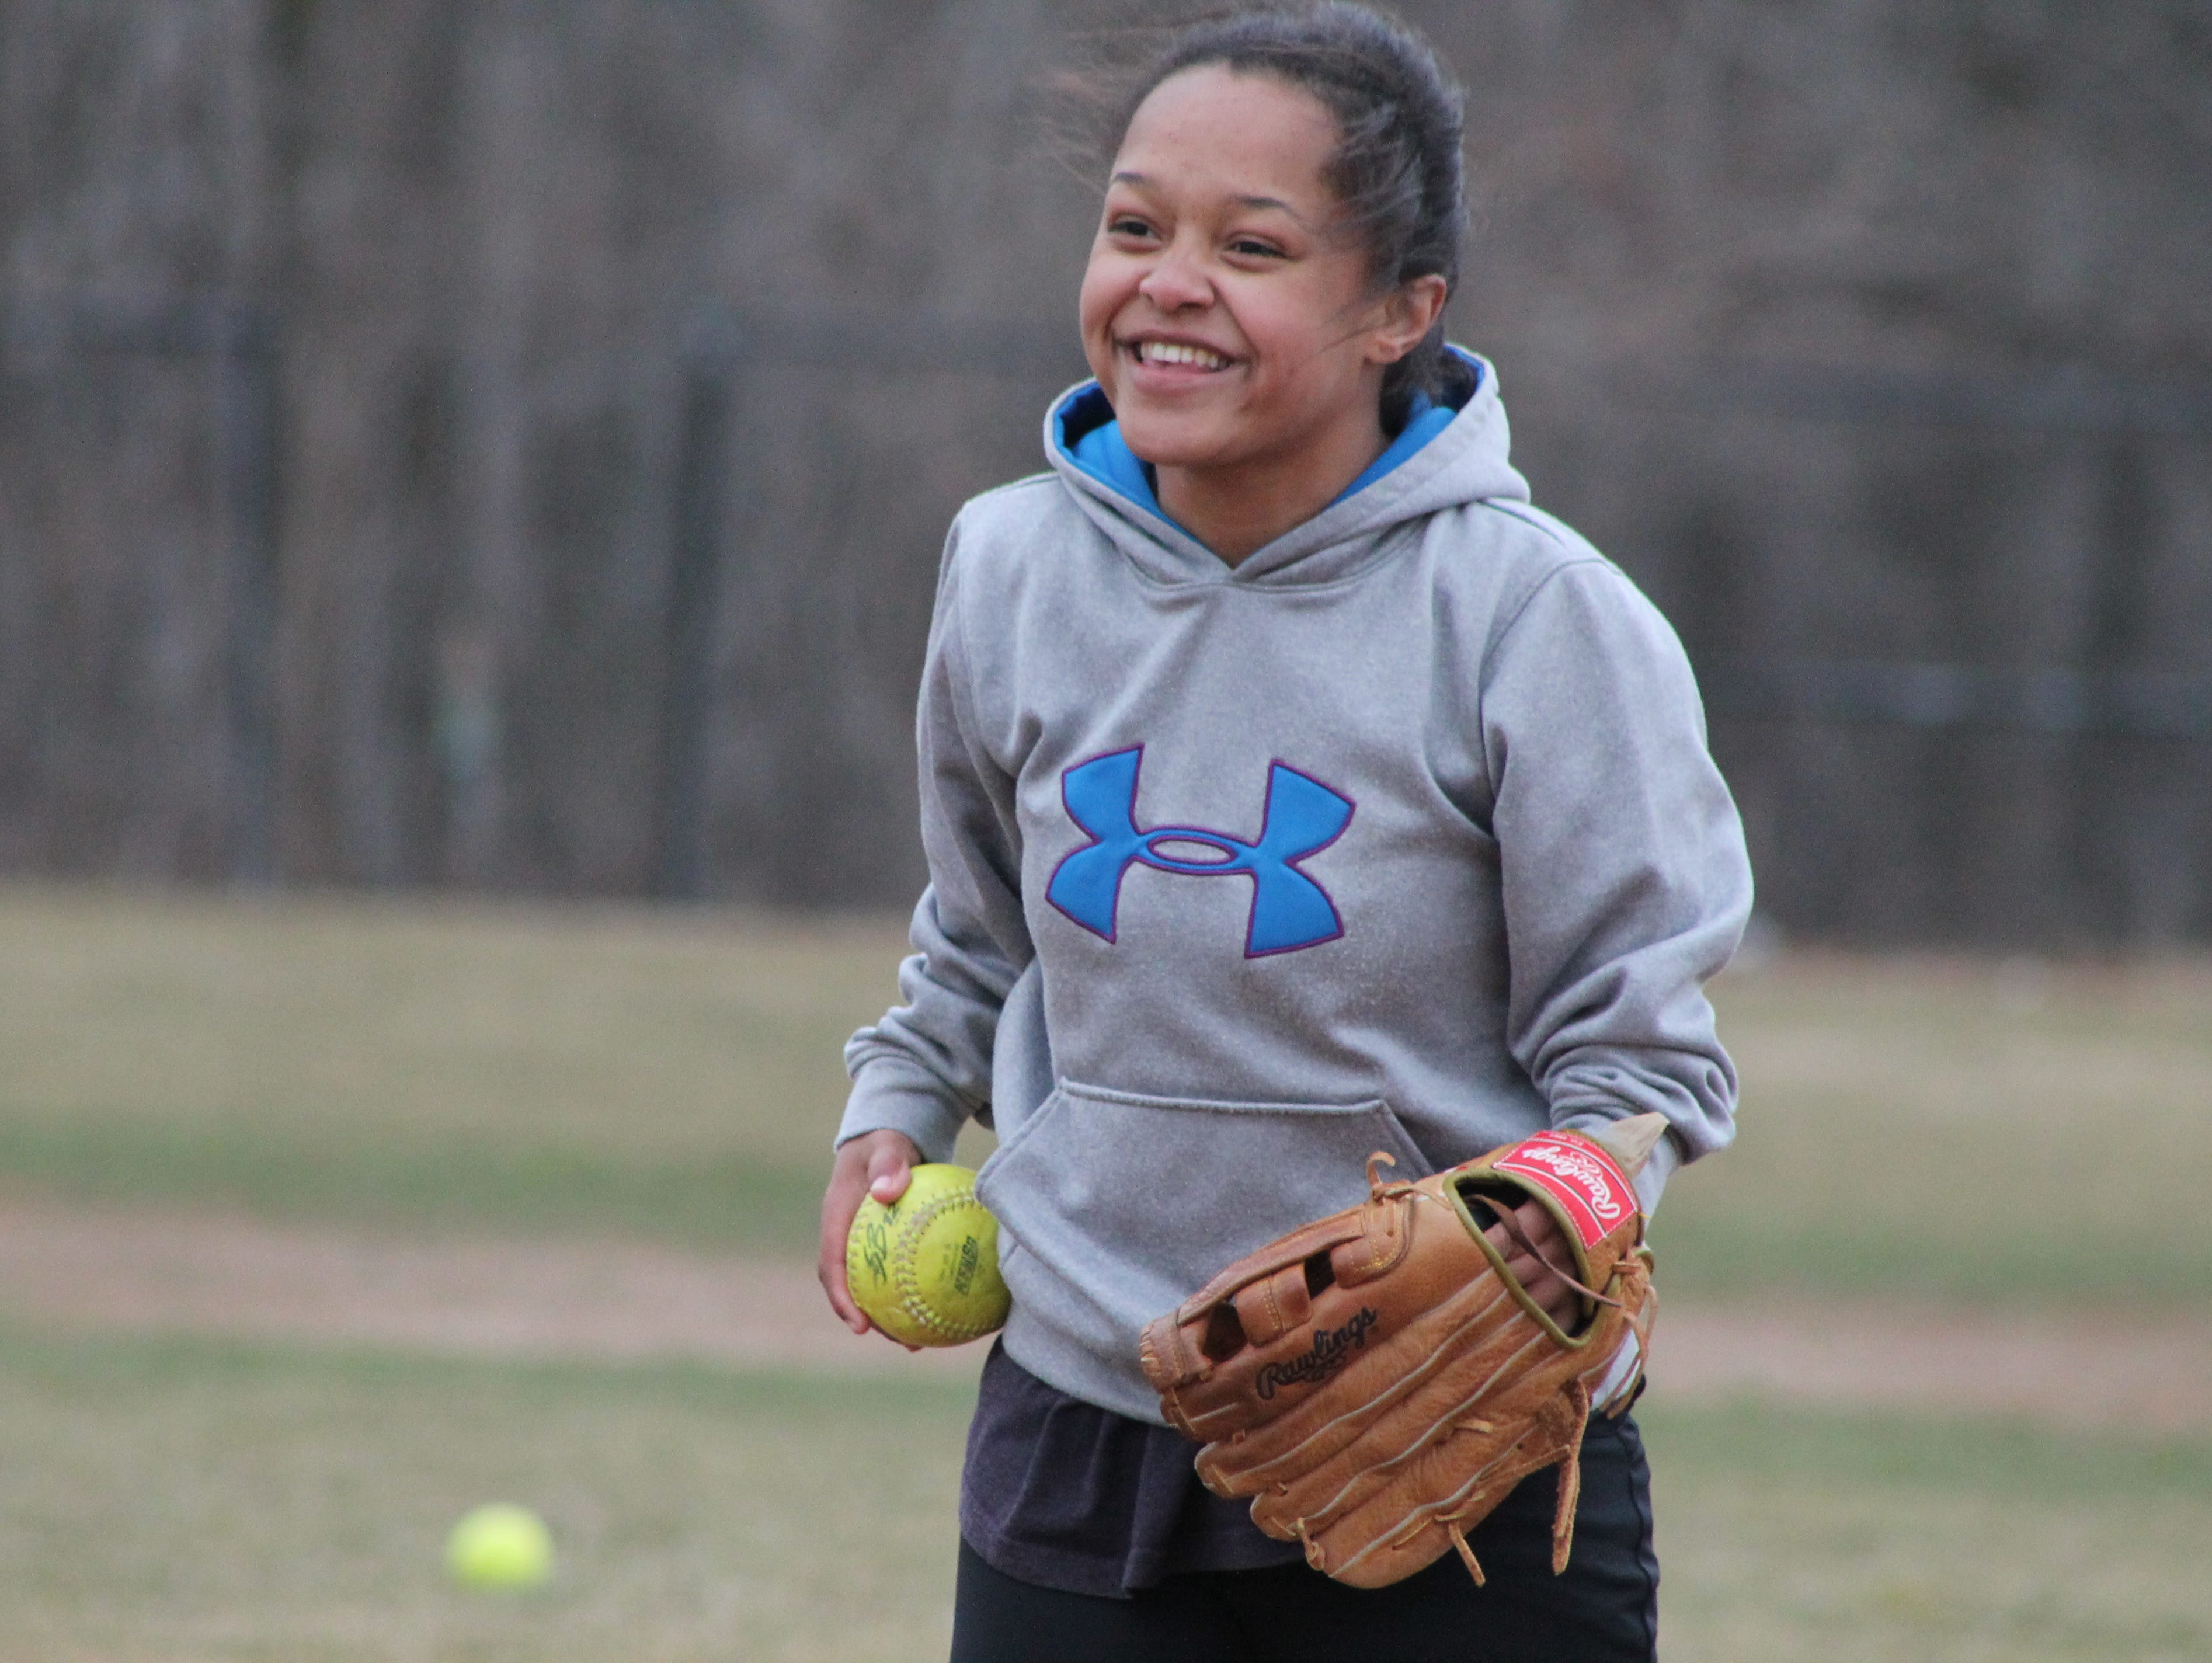 Damascus softball pitcher Sharise Jacob's talent and positive attitude inspire her teammates and coaches.